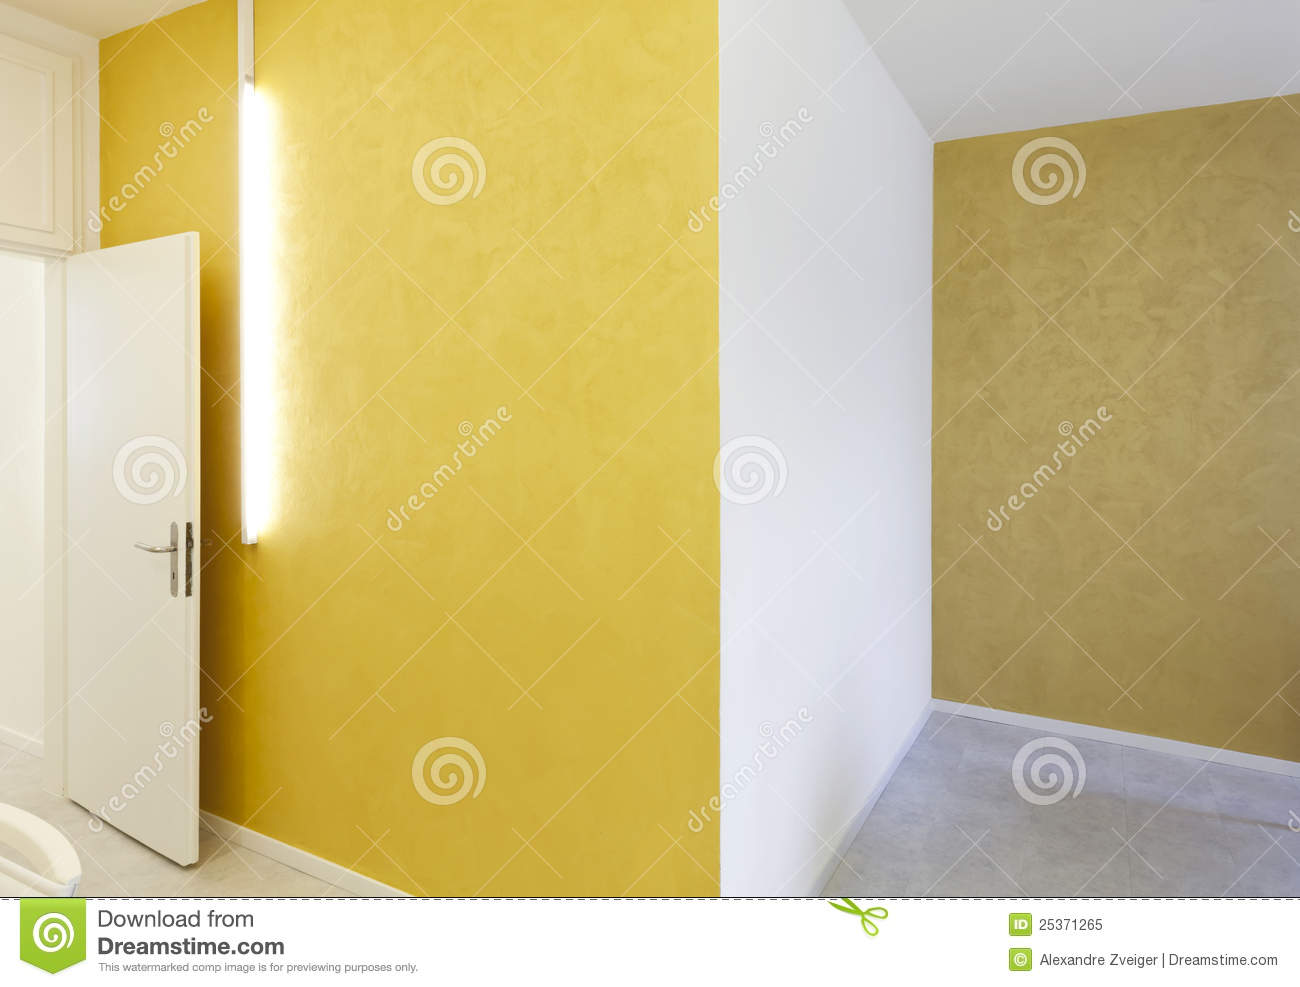 Yellow walls and neon